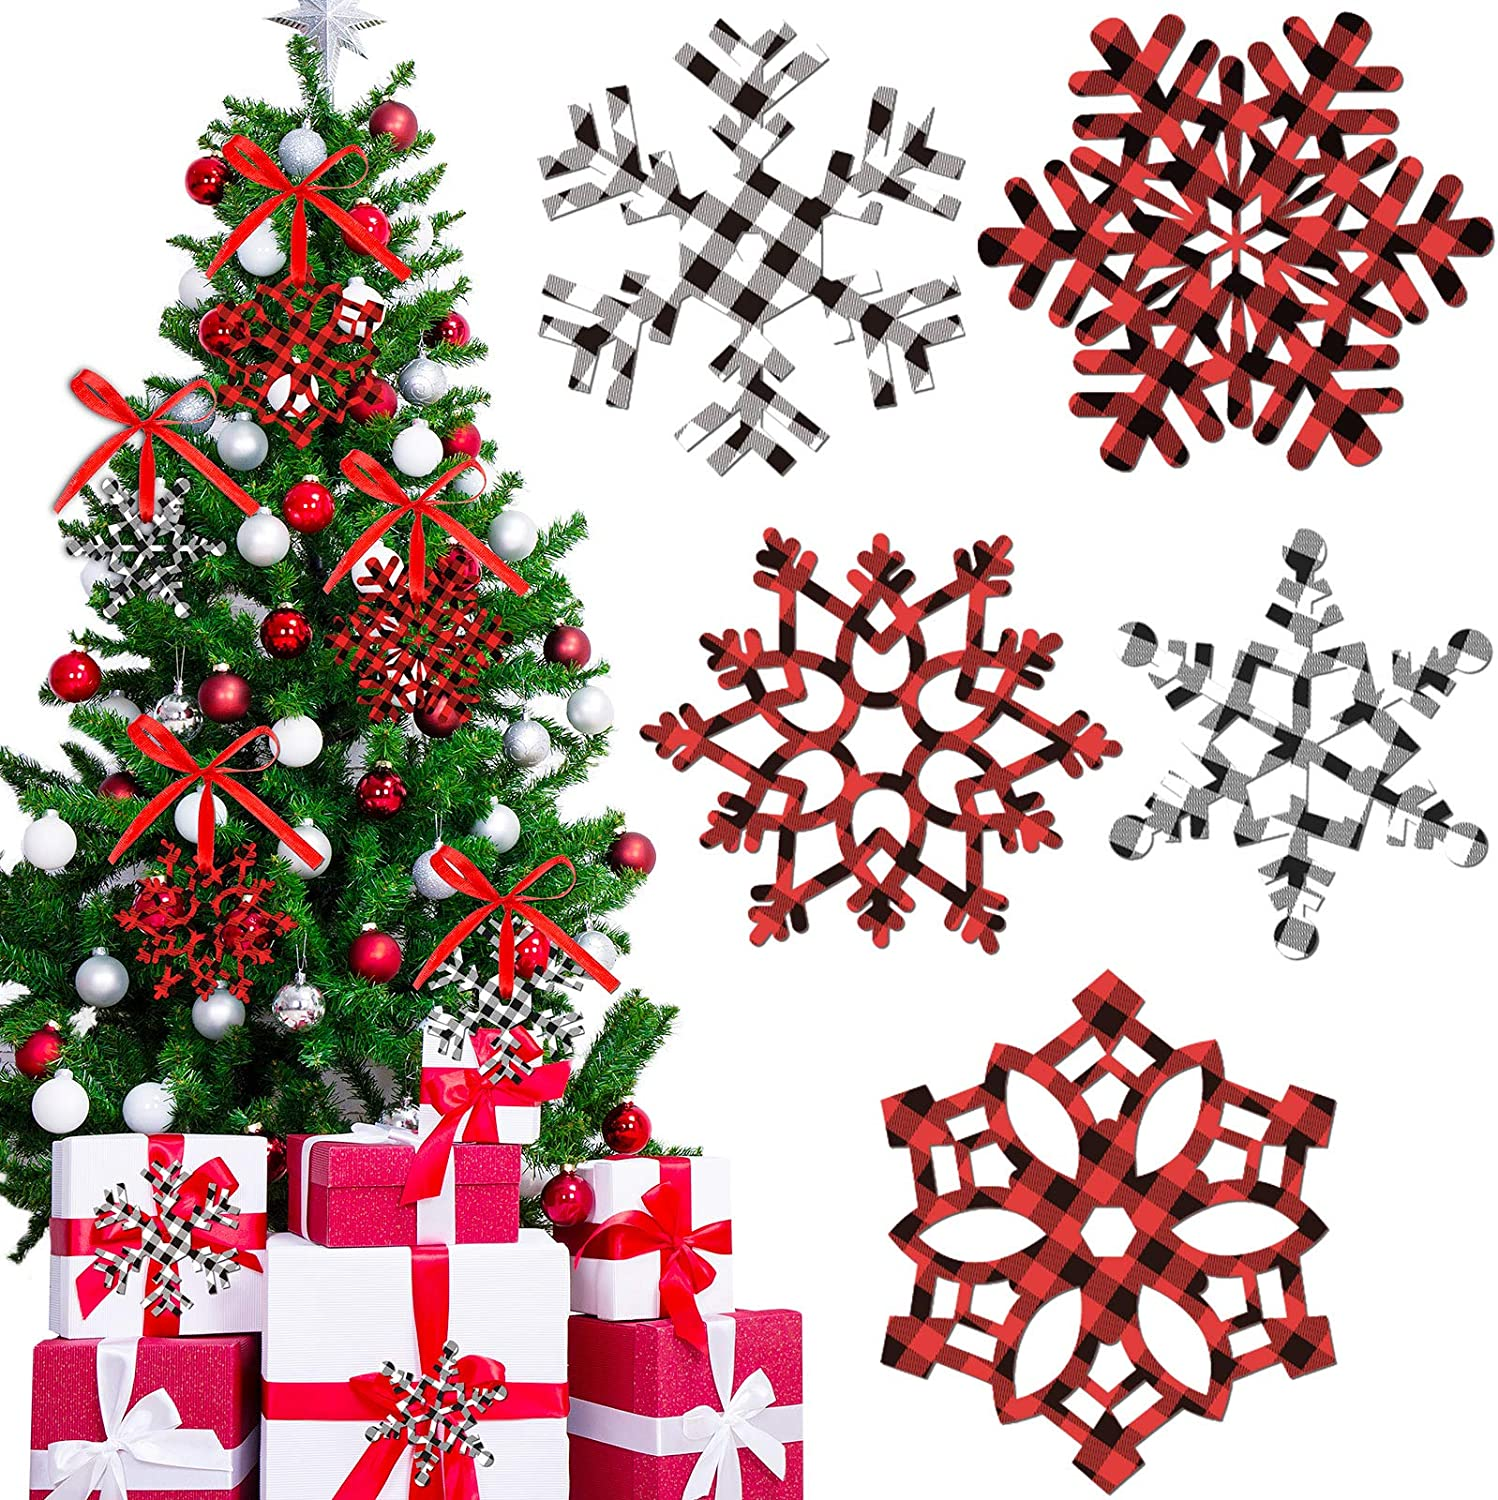 60 Pieces Christmas Snowflakes Cutouts Ornaments Red White Black Buffalo Plaid Christmas Snowflake Paper Cutouts with Ribbon for Christmas Party Decor Accessories, 5 Styles